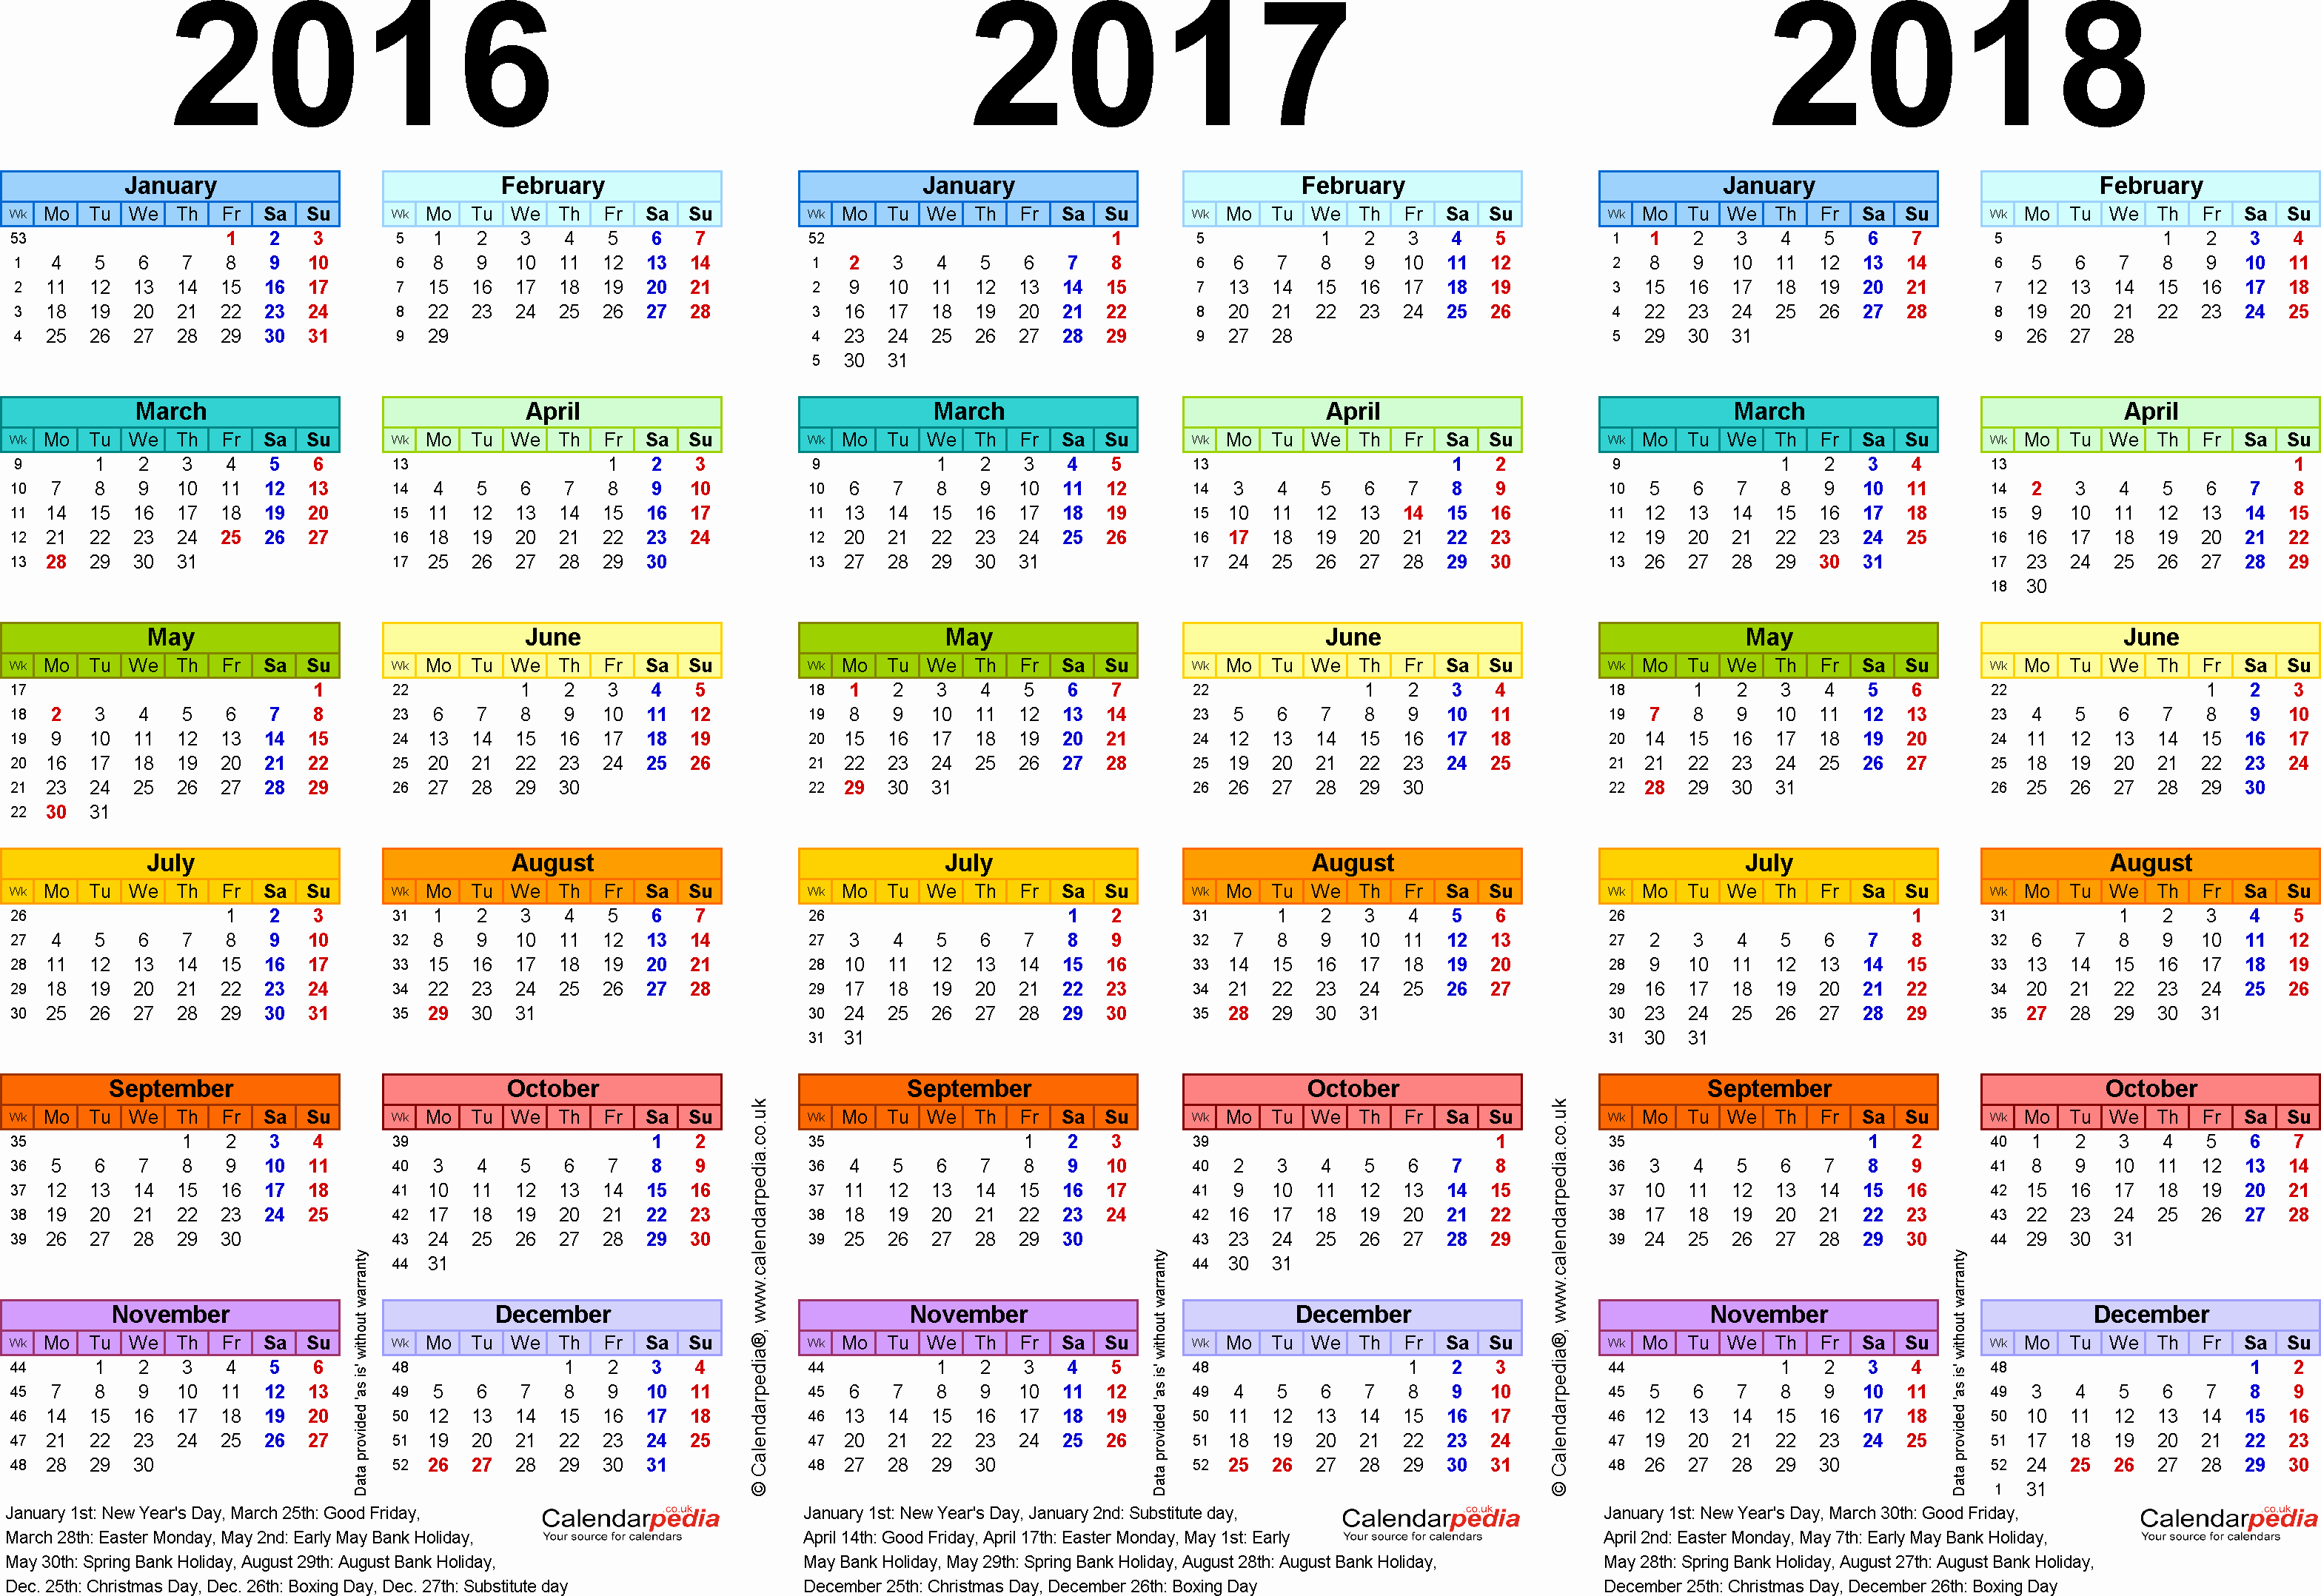 Monthly Calendar 2016-17 Unique Three Year Calendars for 2016 2017 & 2018 Uk for Pdf